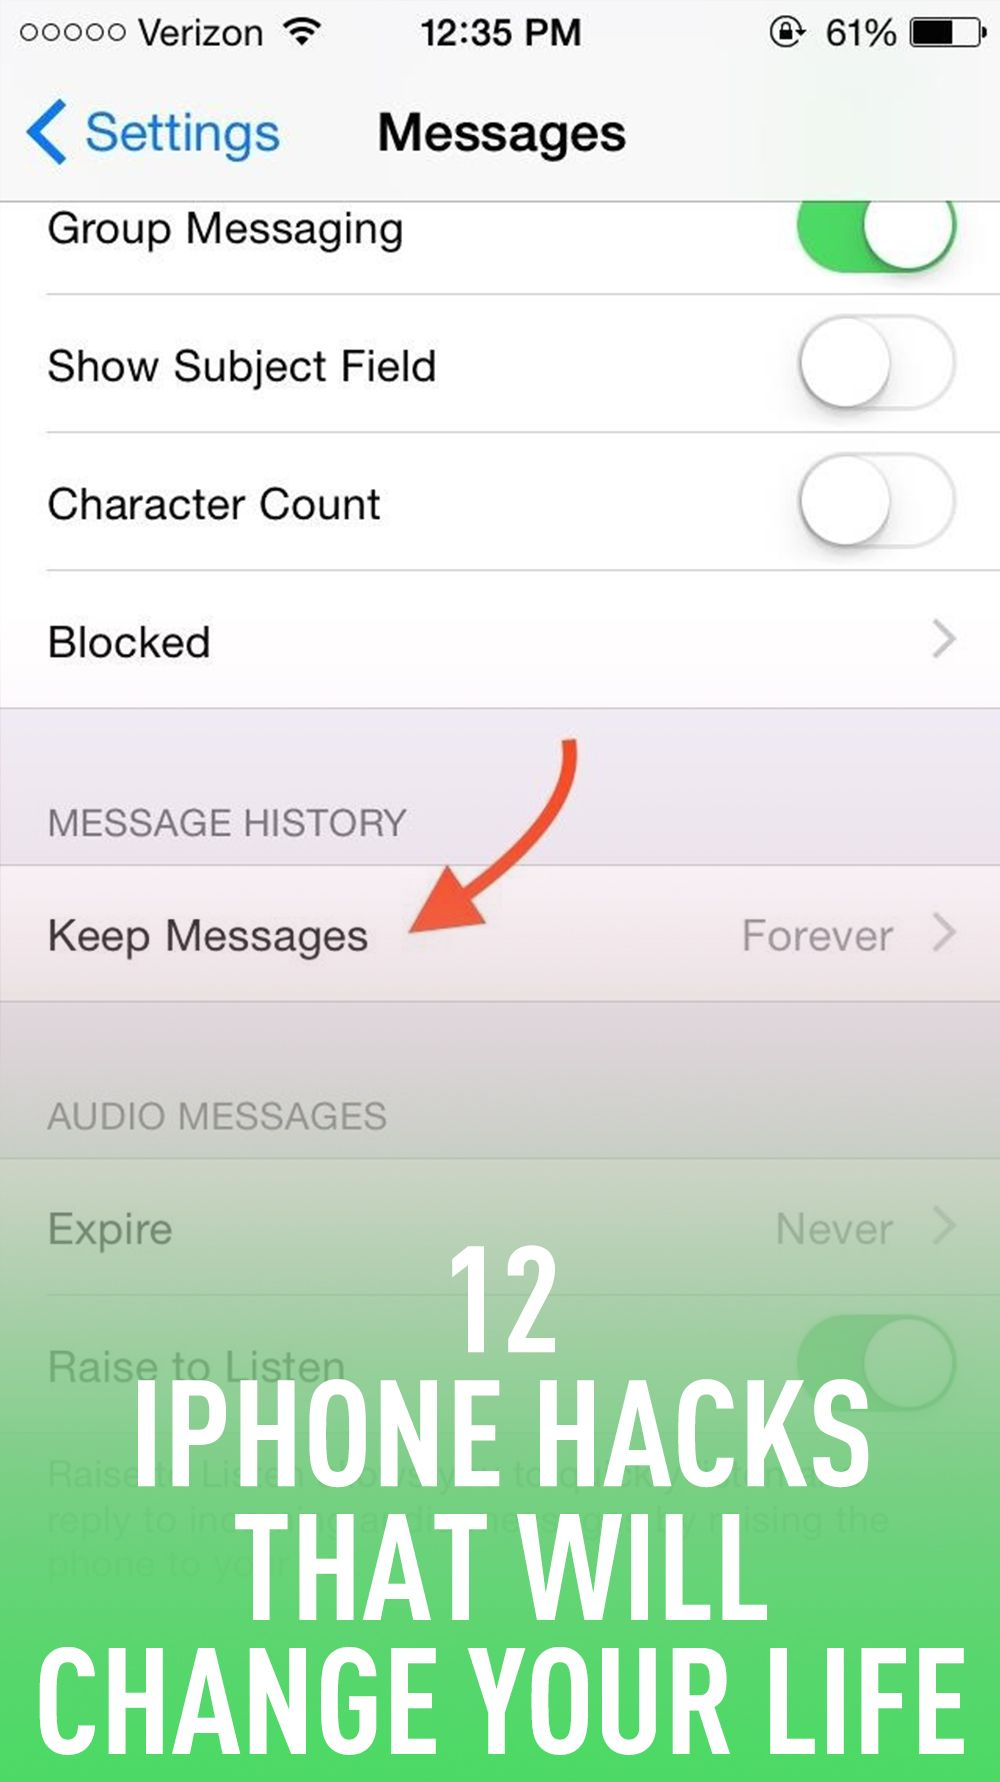 IPhone Storage Hacks: The Easy Way To Make More Space